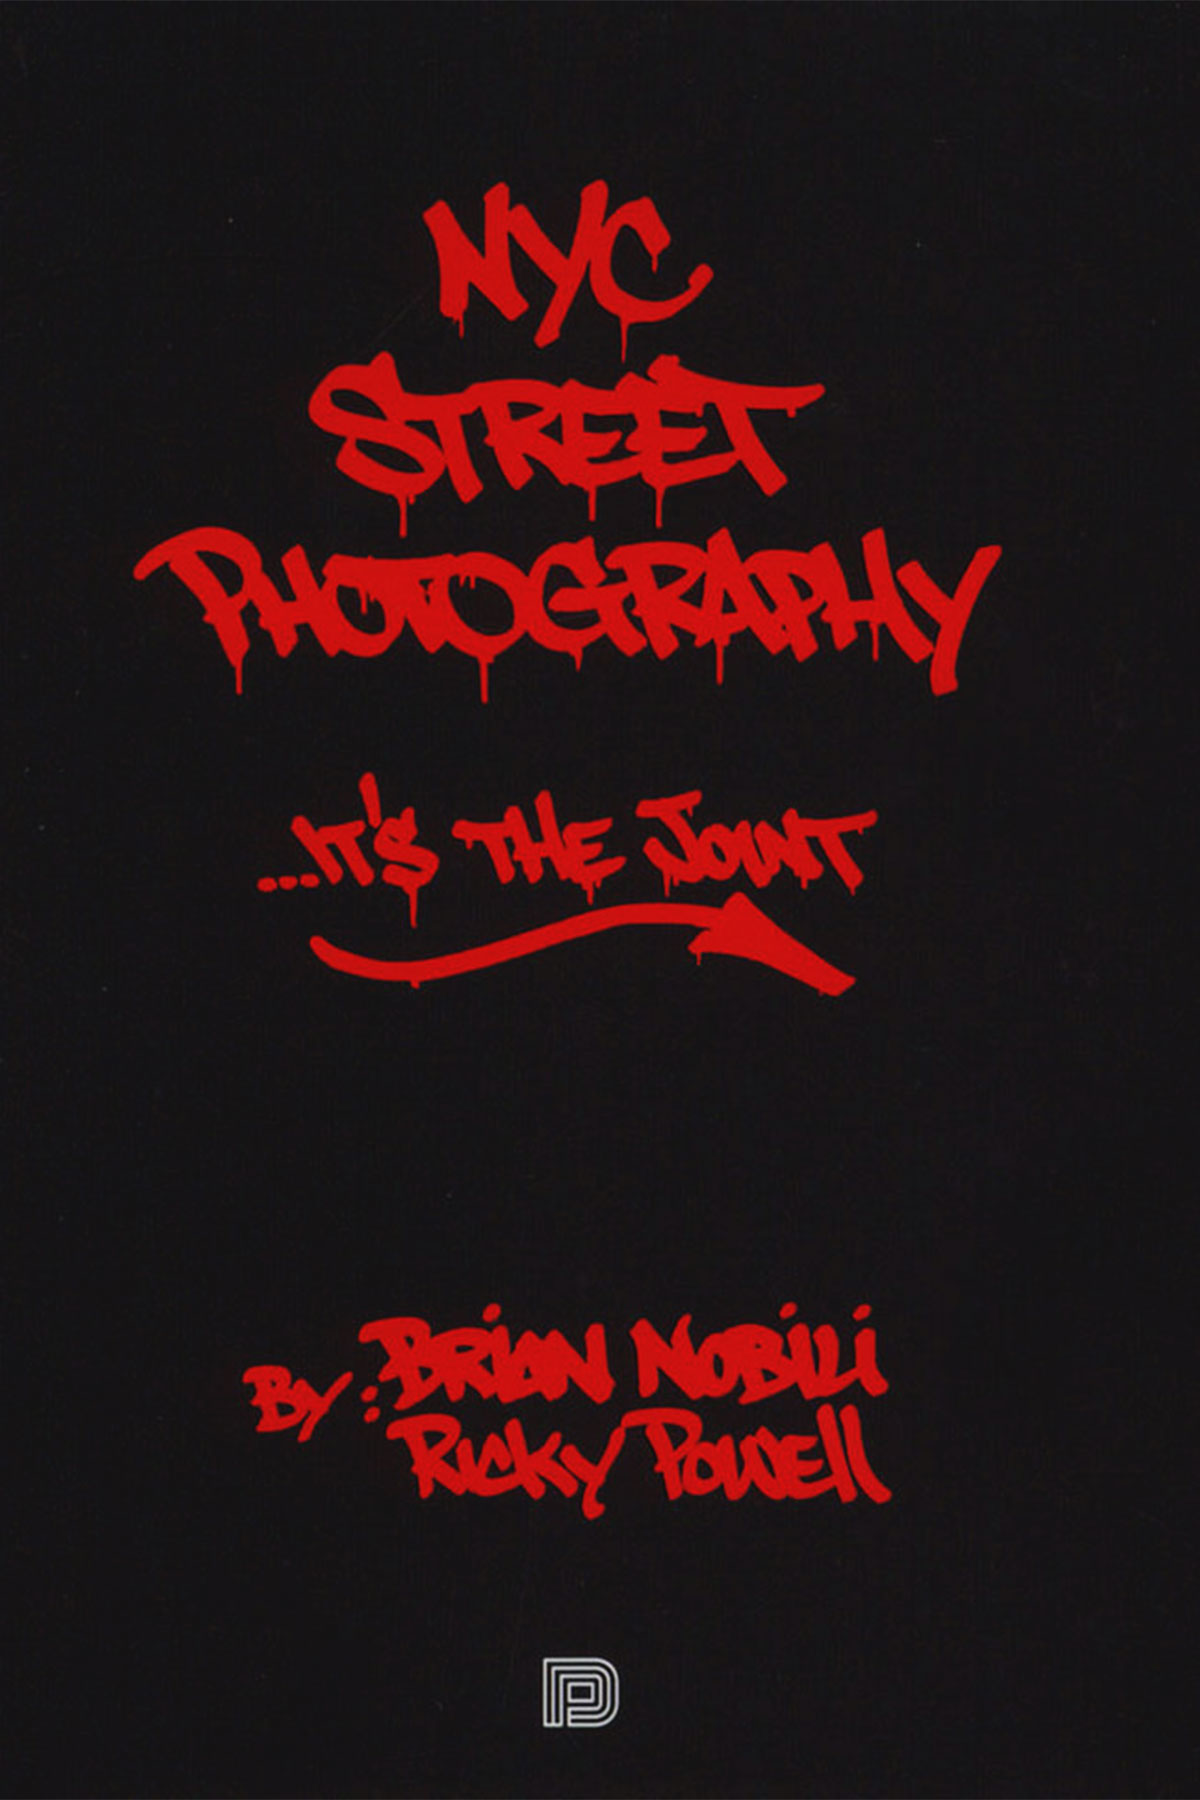 NYC STREET PHOTOGRAPHY ... IT'S THE JOINT di Brian Nobili / Ricky Powell